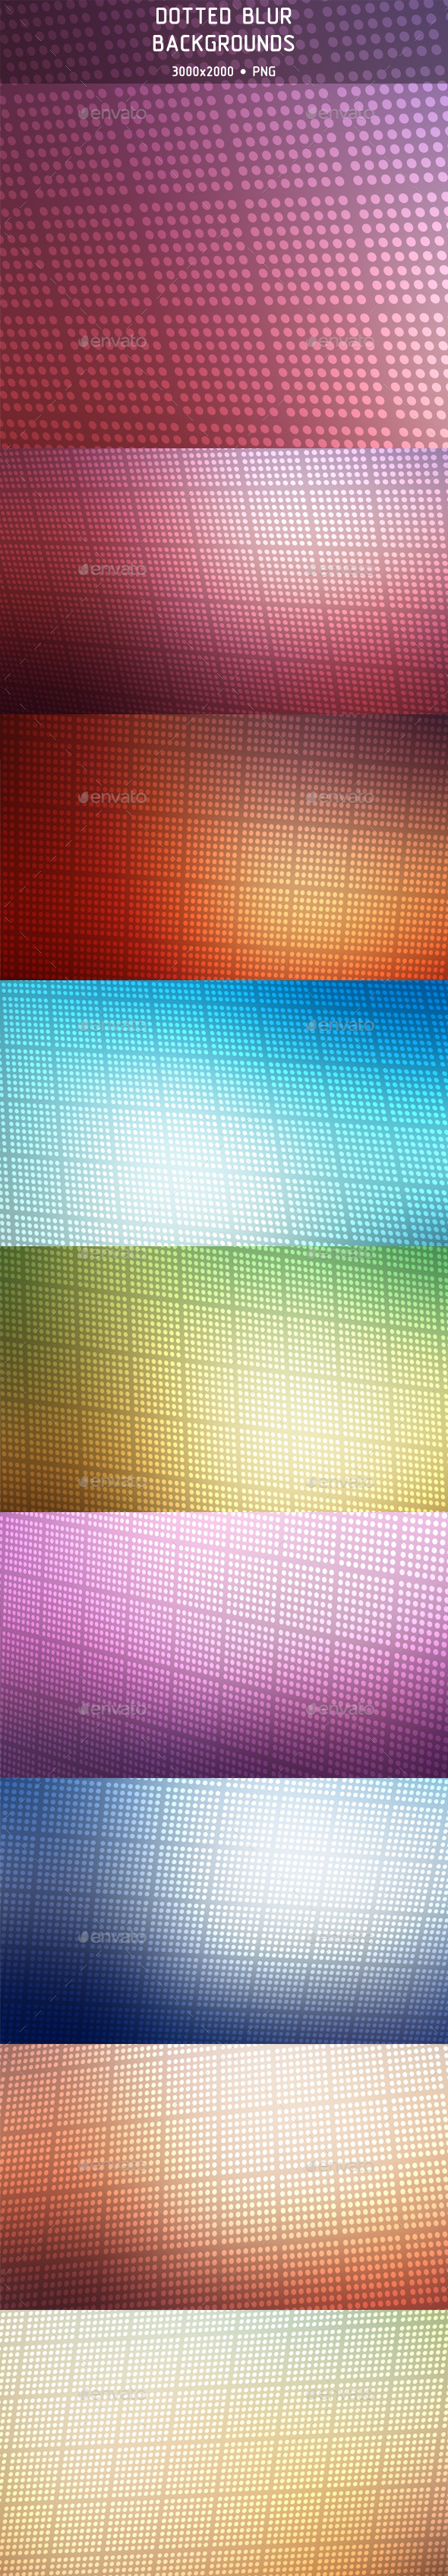 Dotted Blur Backgrounds - Abstract Backgrounds